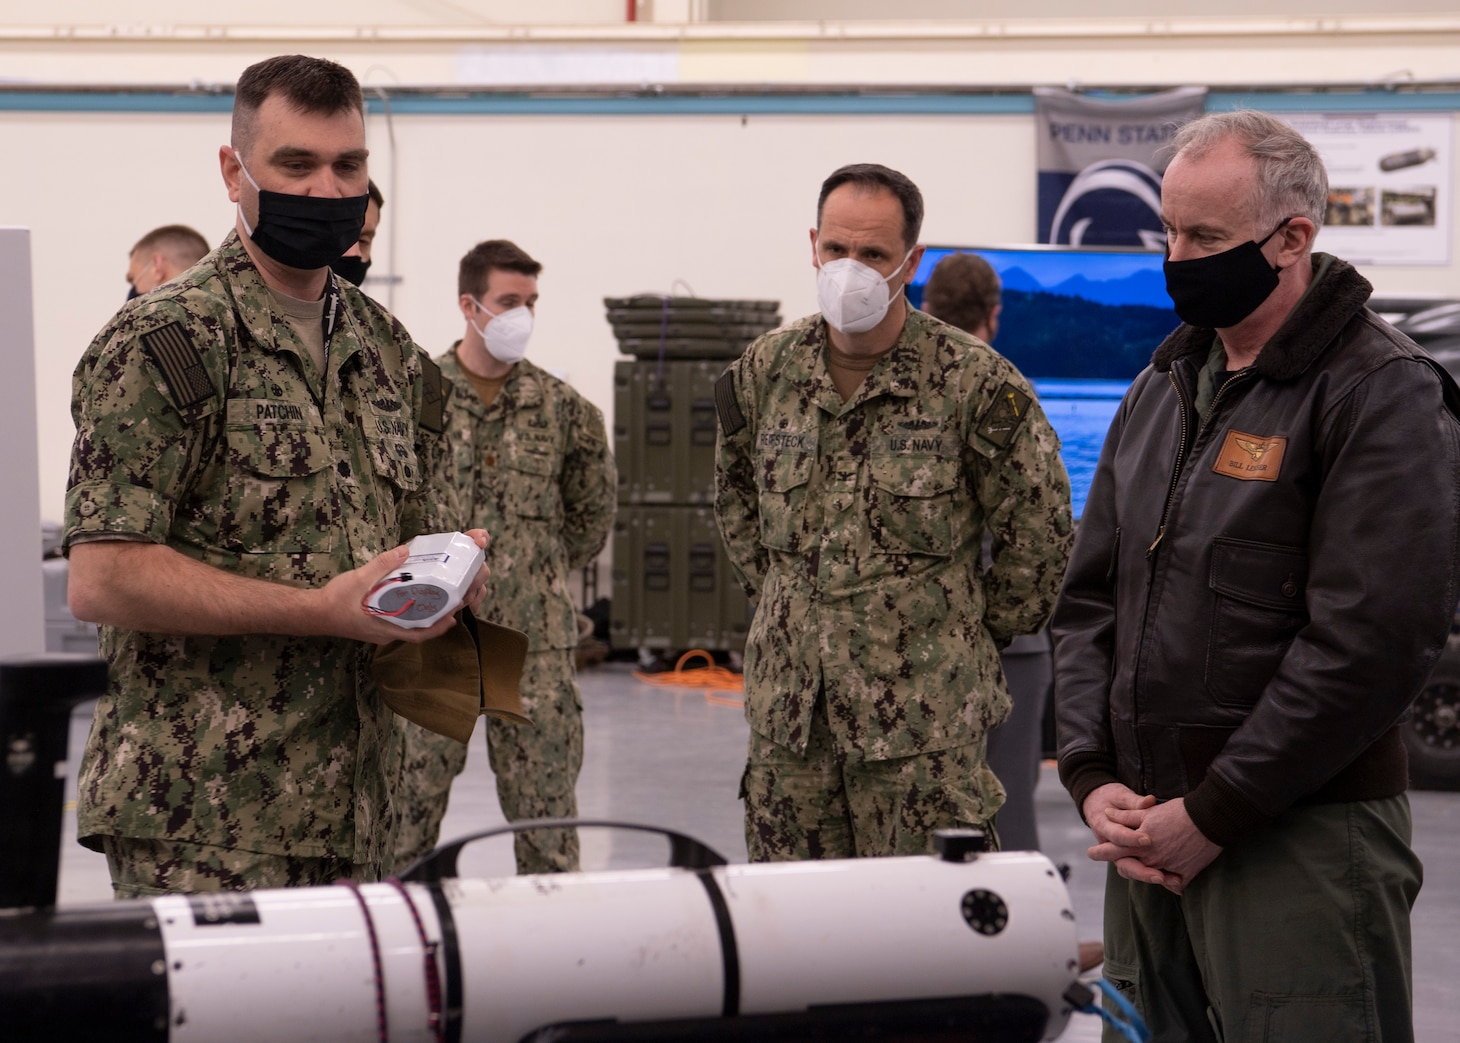 Cmdr. Rob Patchin, commanding officer of Unmanned Undersea Vehicle Squadron (UUVRON) 1, demonstrates battery endurance of a small-class unmanned undersea vehicle to Capt. Lincoln Reifsteck.